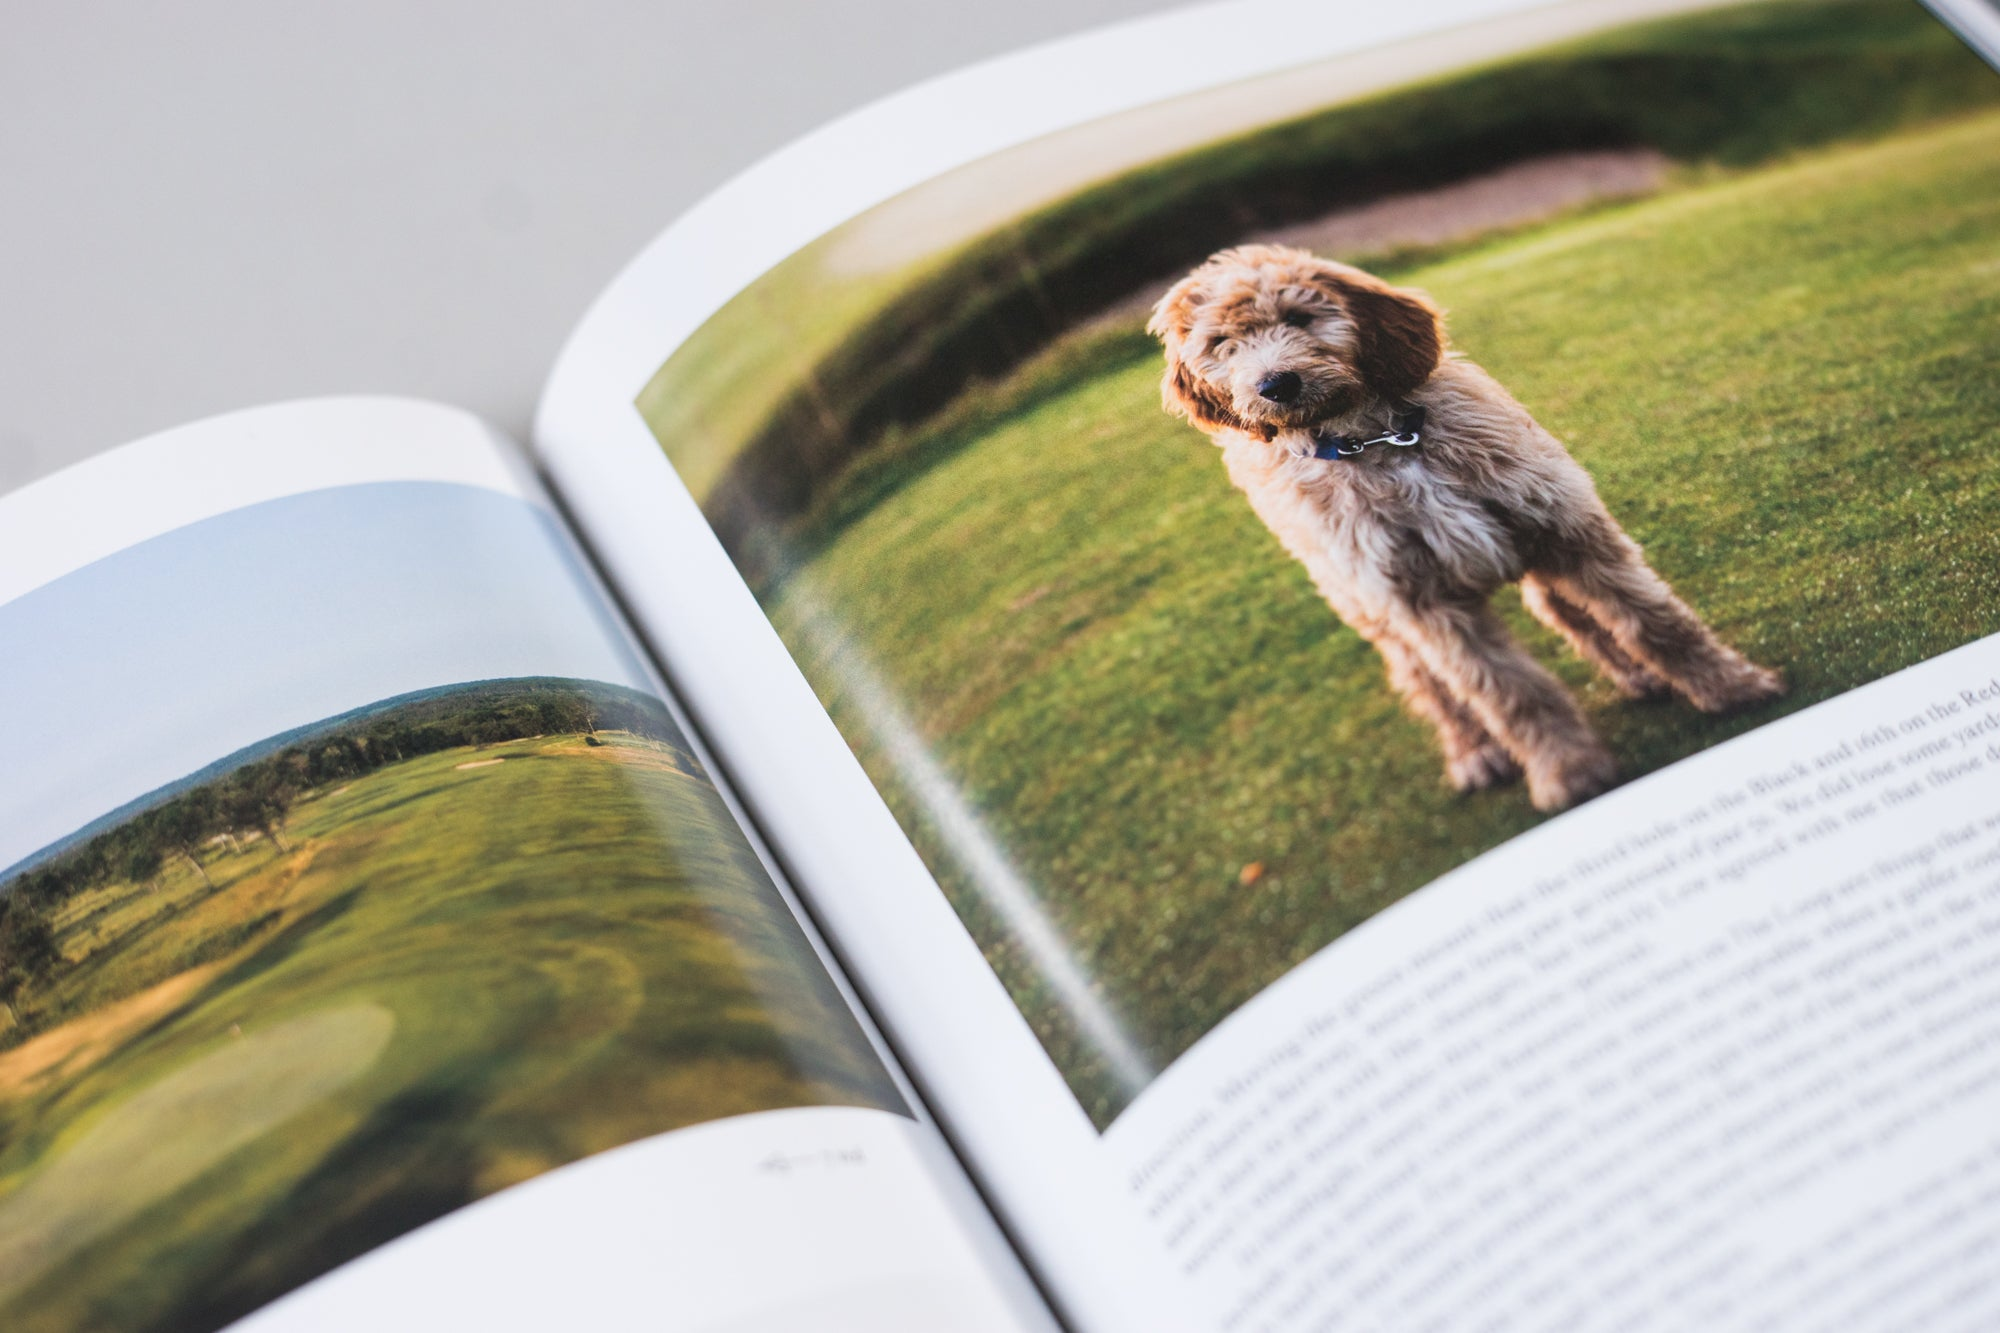 A photo of a dog on a golf course from The Golfer's Journal Issue 6